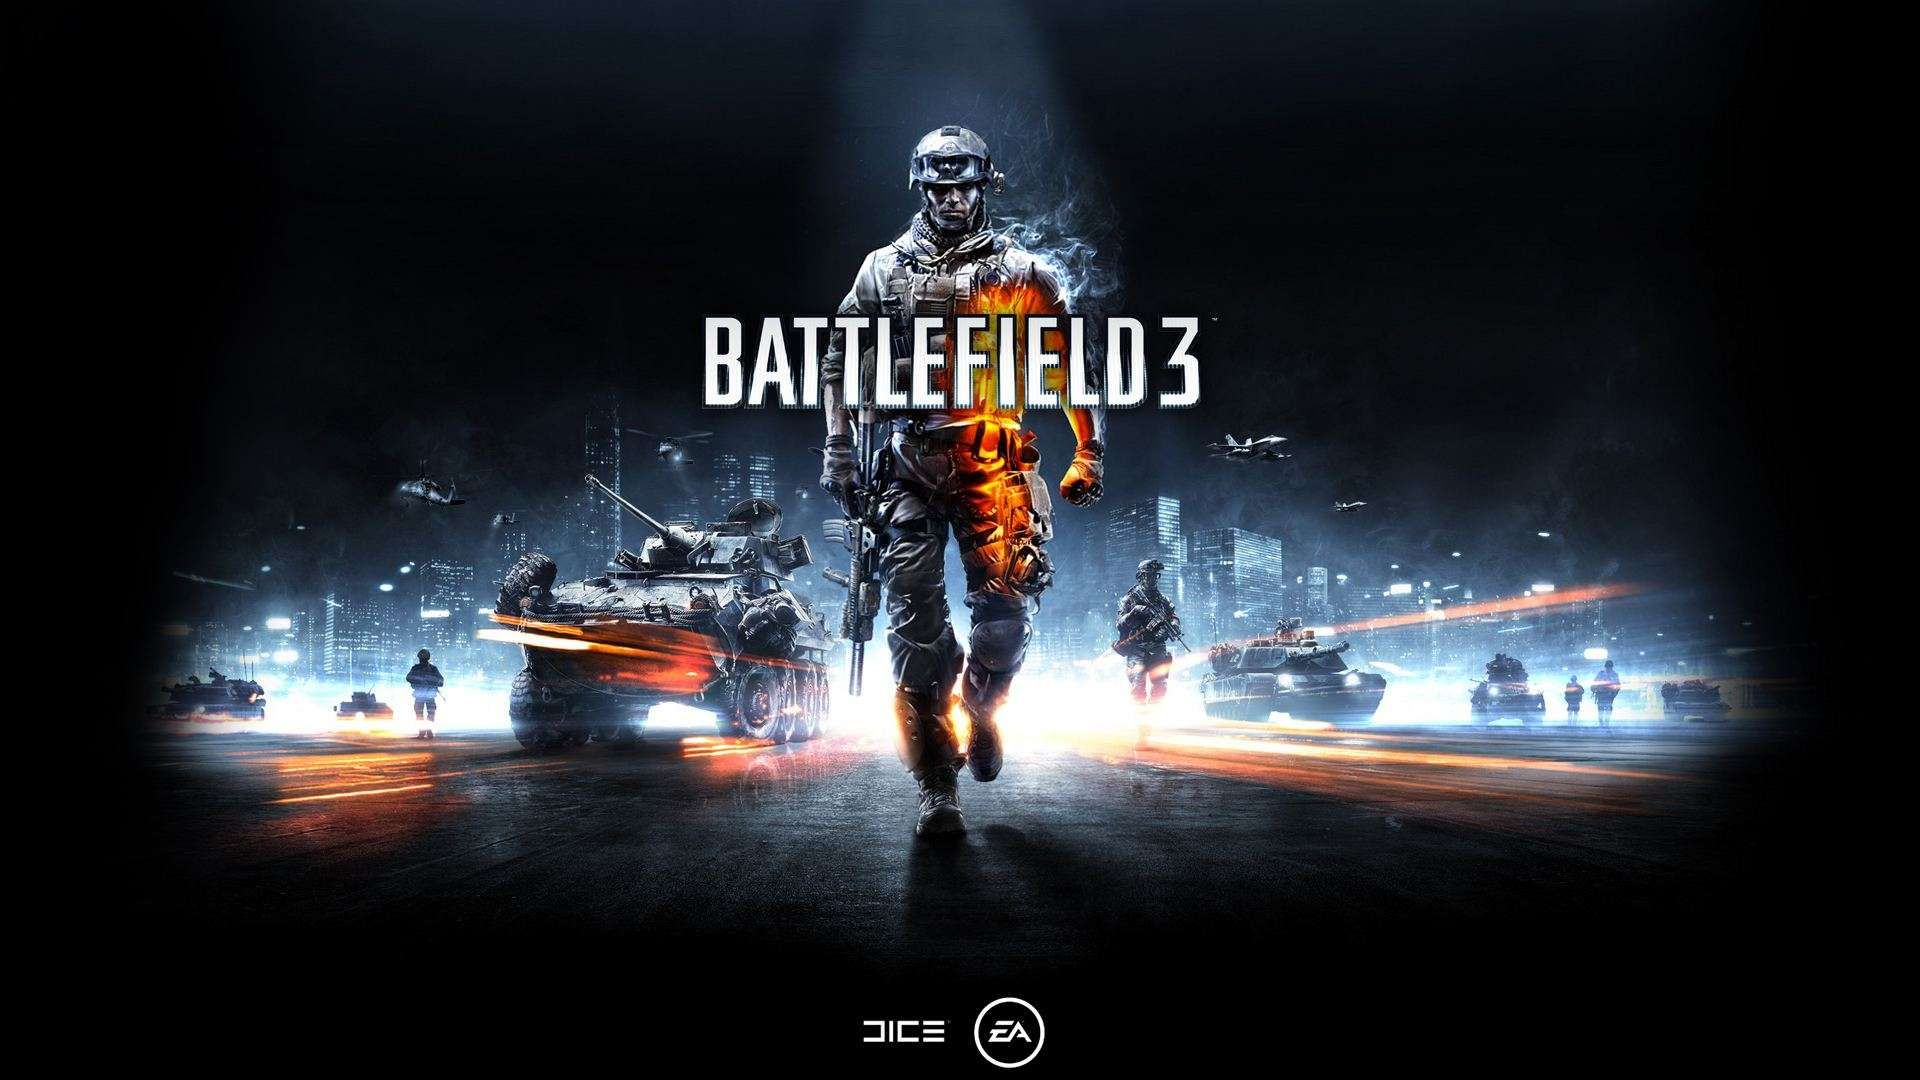 download game plane with Battlefield 3 on Minimalistische Hintergrundbilder moreover Cool Abstract Images Hd Images Wallpapers Background Photos Smart Phone Windows 1920x1080 moreover Wiggles Big Red Car Wallpaper together with Nature Landscape Airplane Window Cityscape Clouds Aerial View Sunset Lights Sky Flying additionally Cuphead And Frog Boss 562545733.